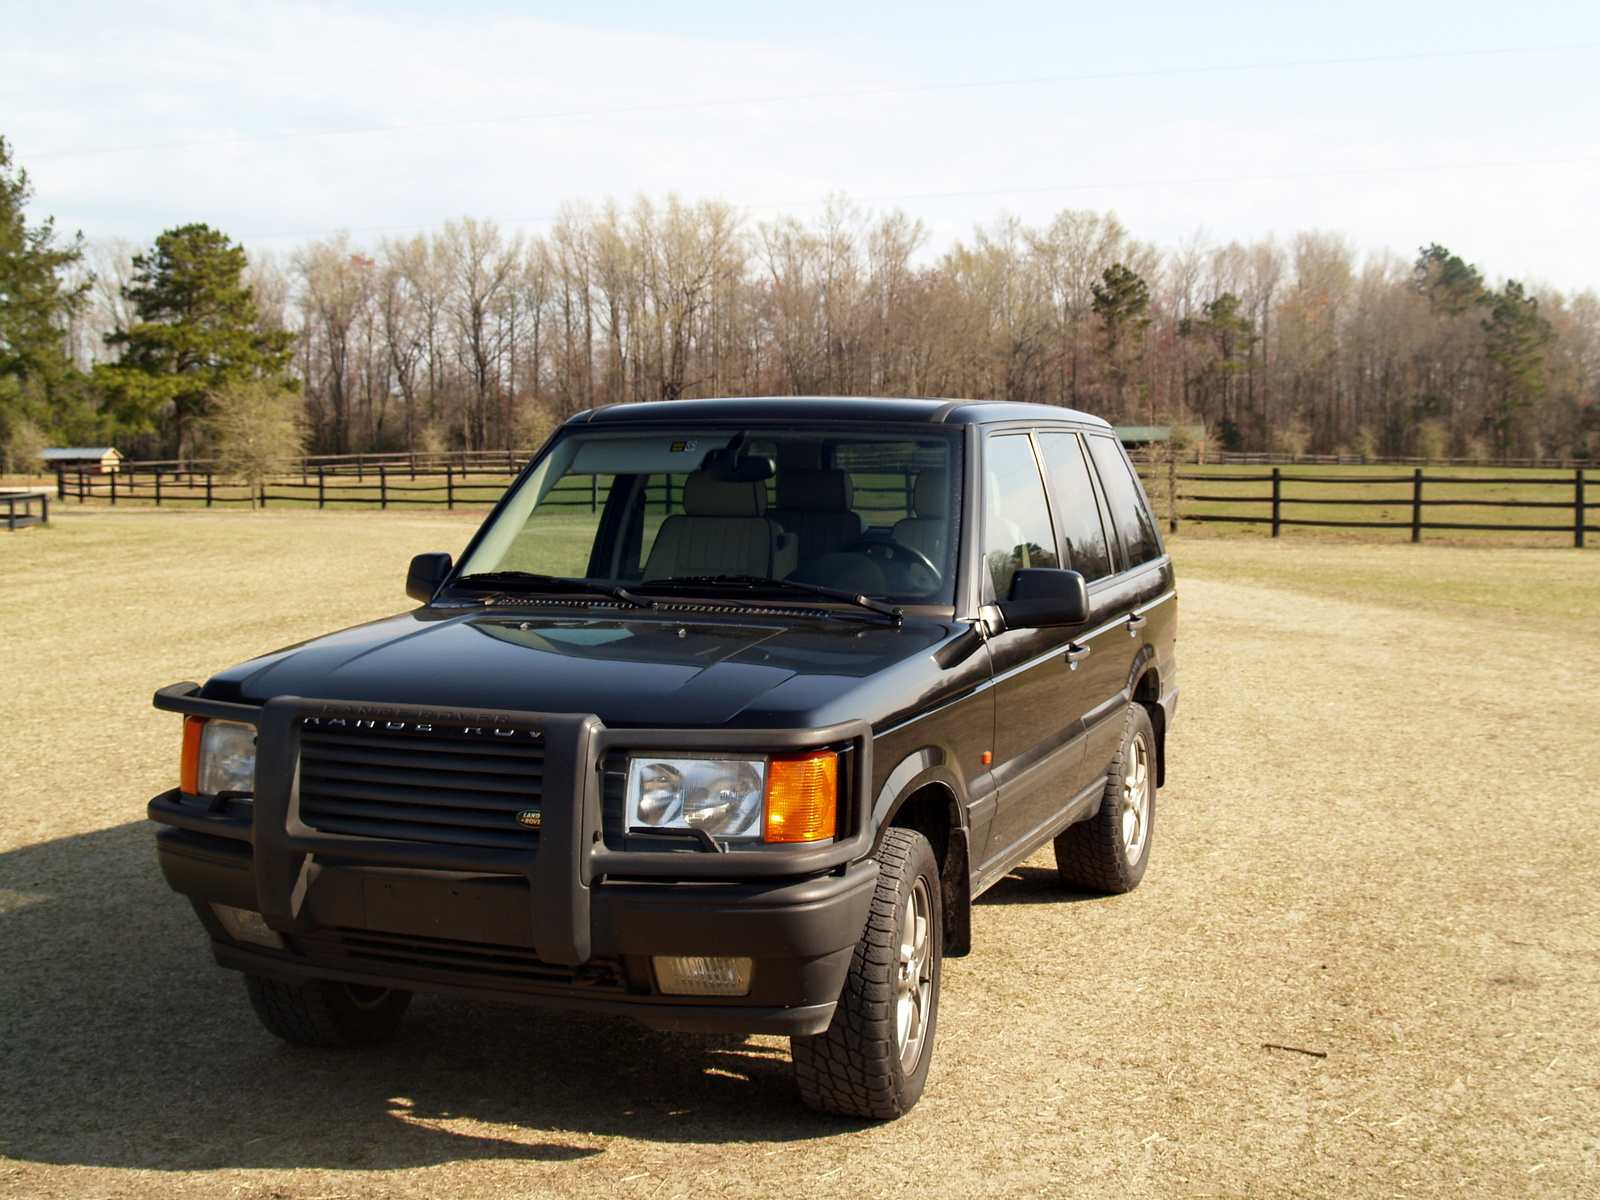 1999 Land Rover Range Rover Information and photos ZombieDrive